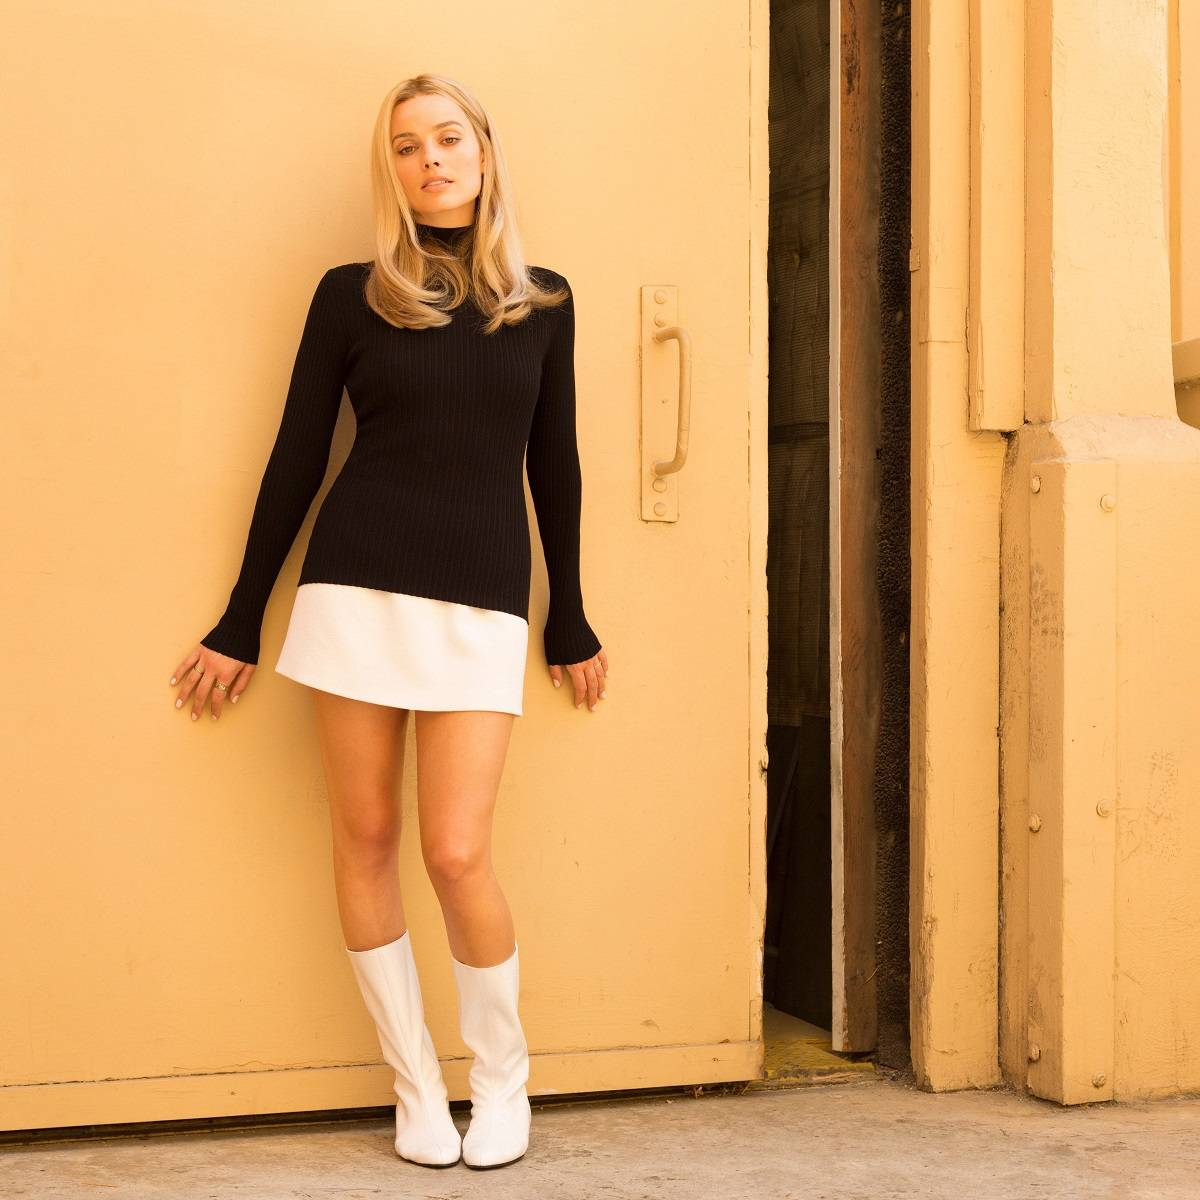 Margot Robbie na planie filmu Once Upon a Time in Hollywood